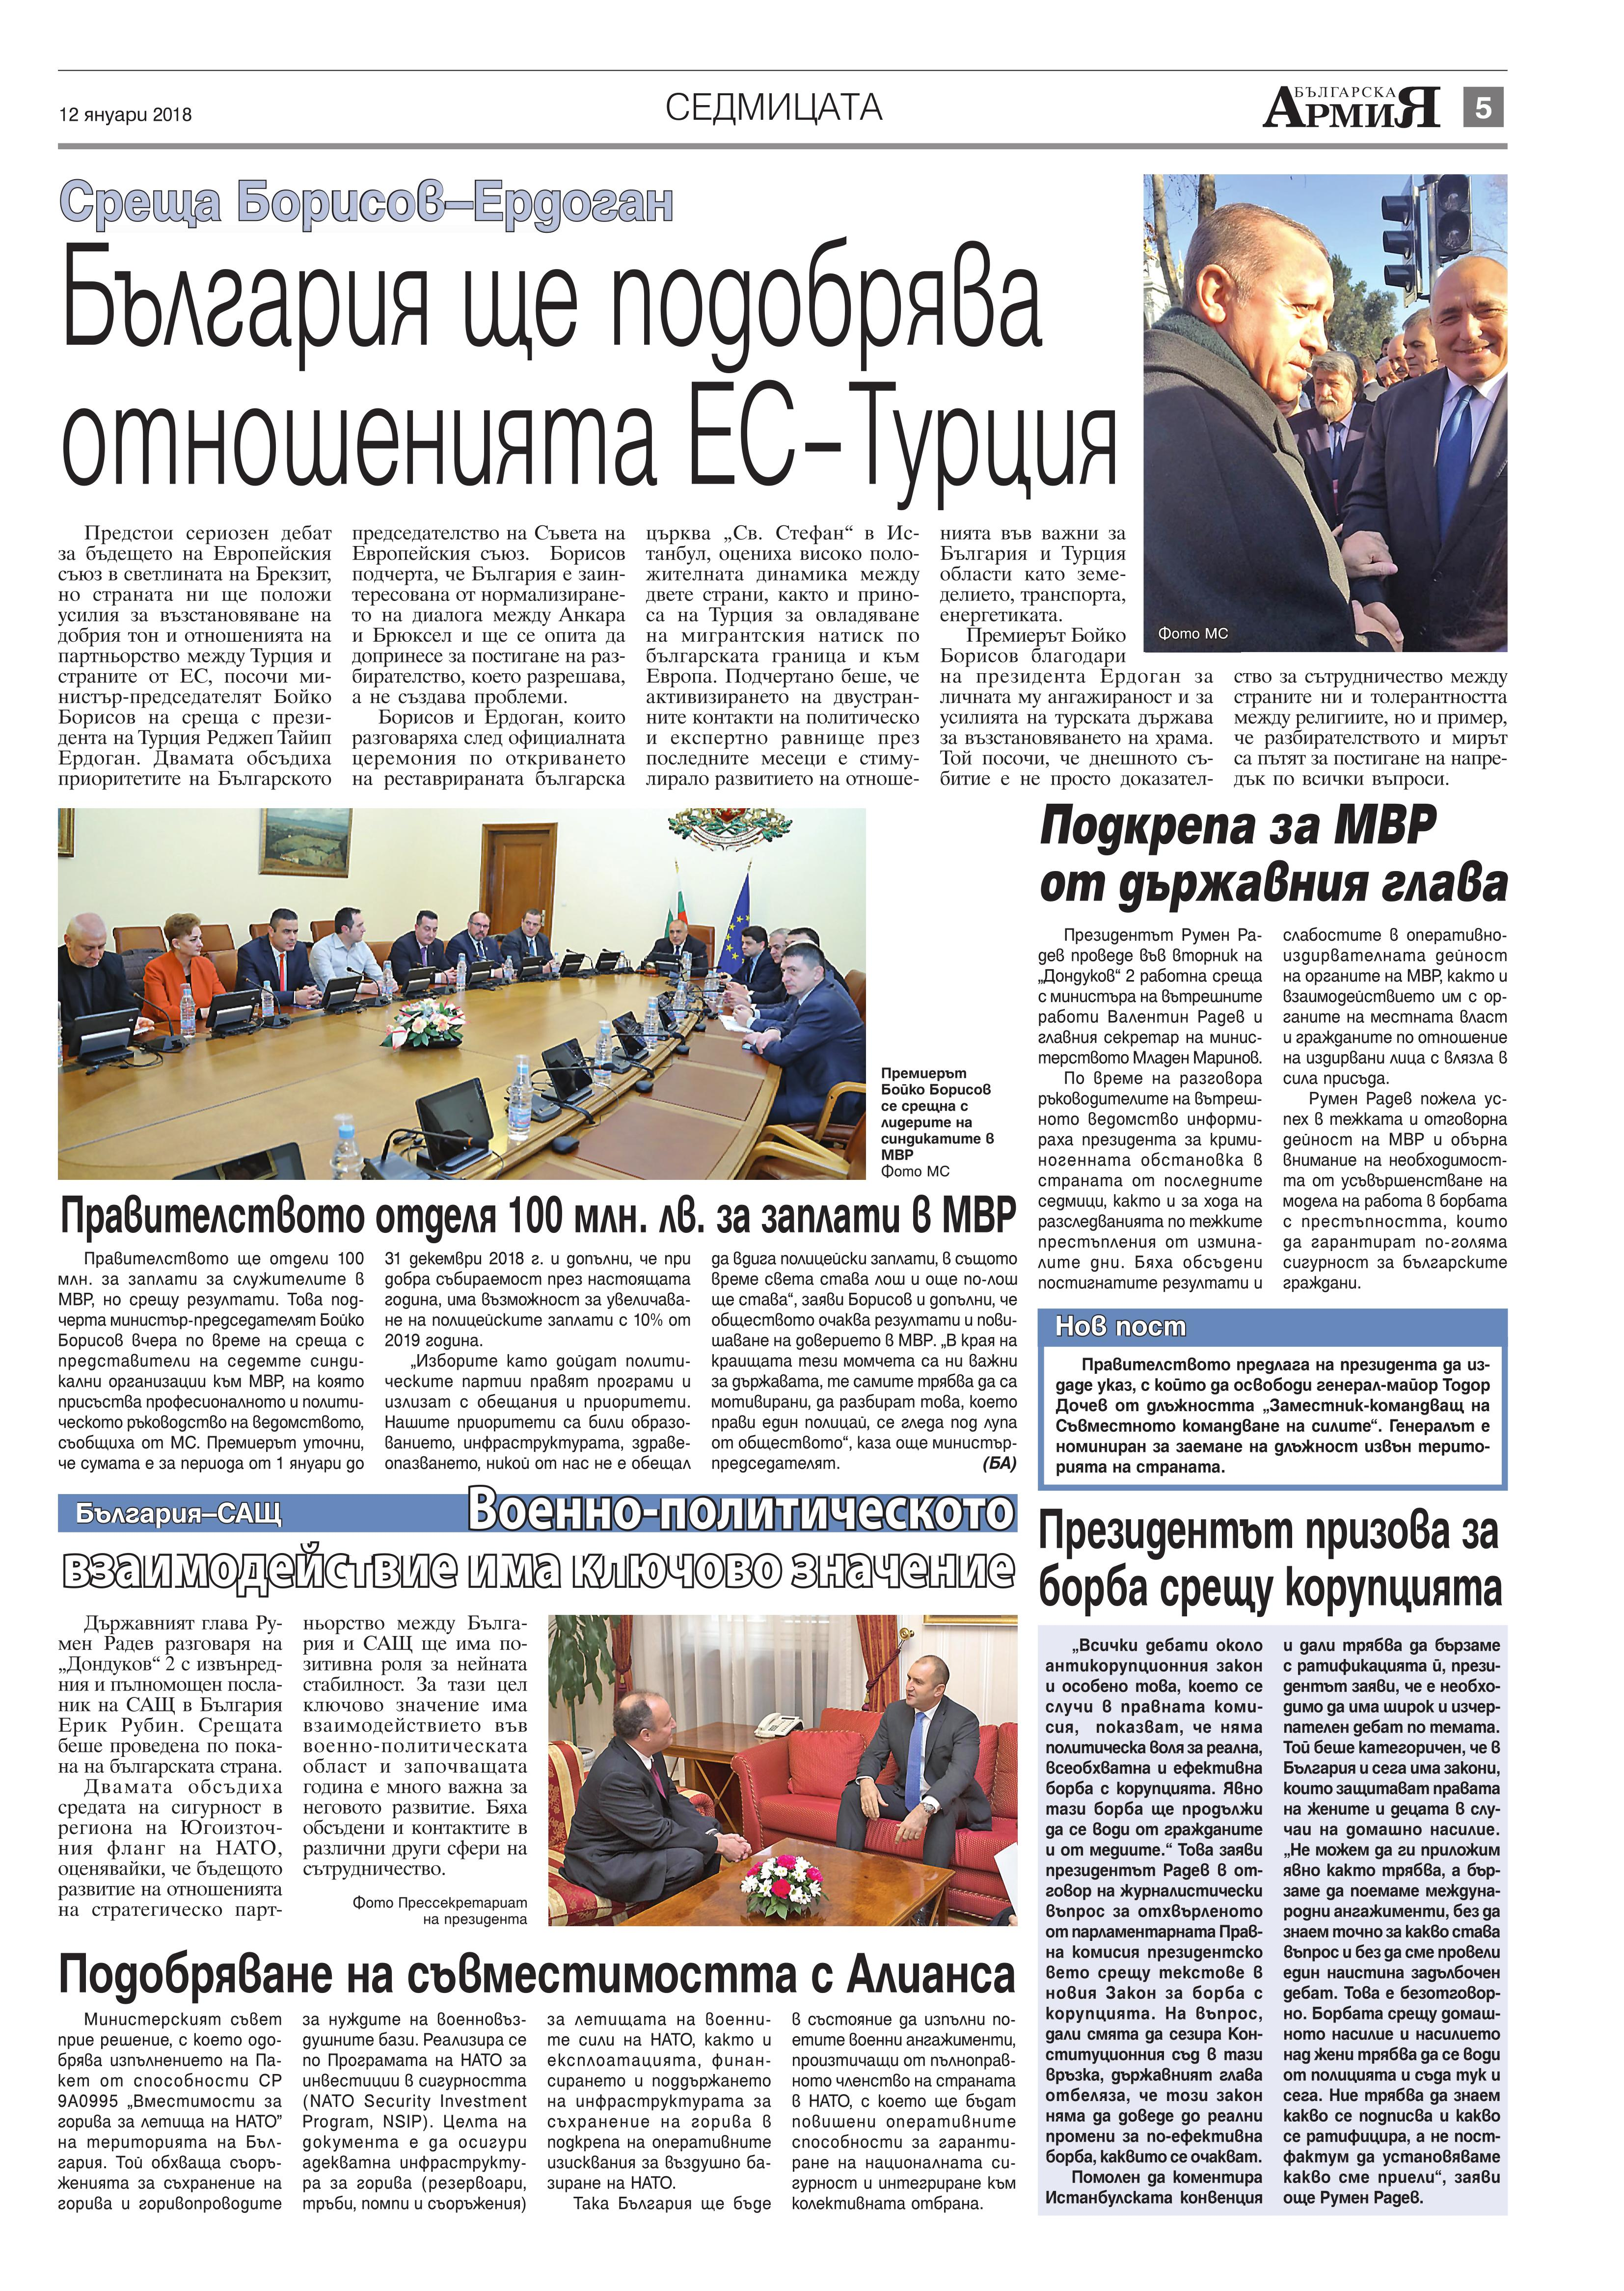 https://armymedia.bg/wp-content/uploads/2015/06/05.page1_-34.jpg